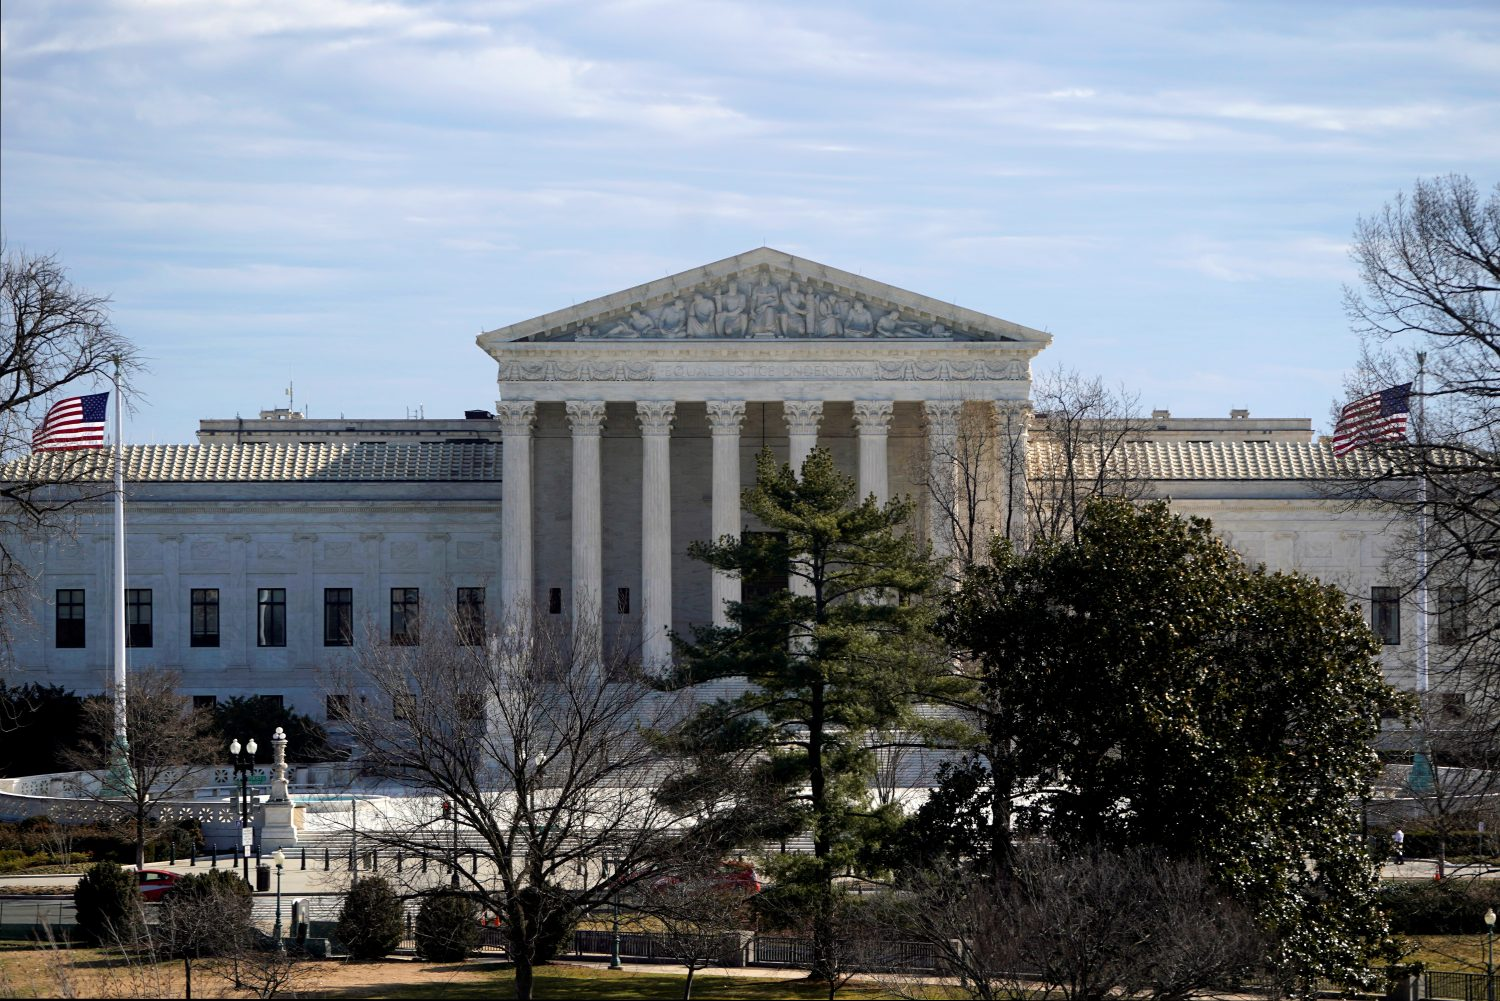 The Supreme Court building is seen from the U.S. Capitol in Washington, U.S., February 15, 2019. REUTERS/Joshua Roberts